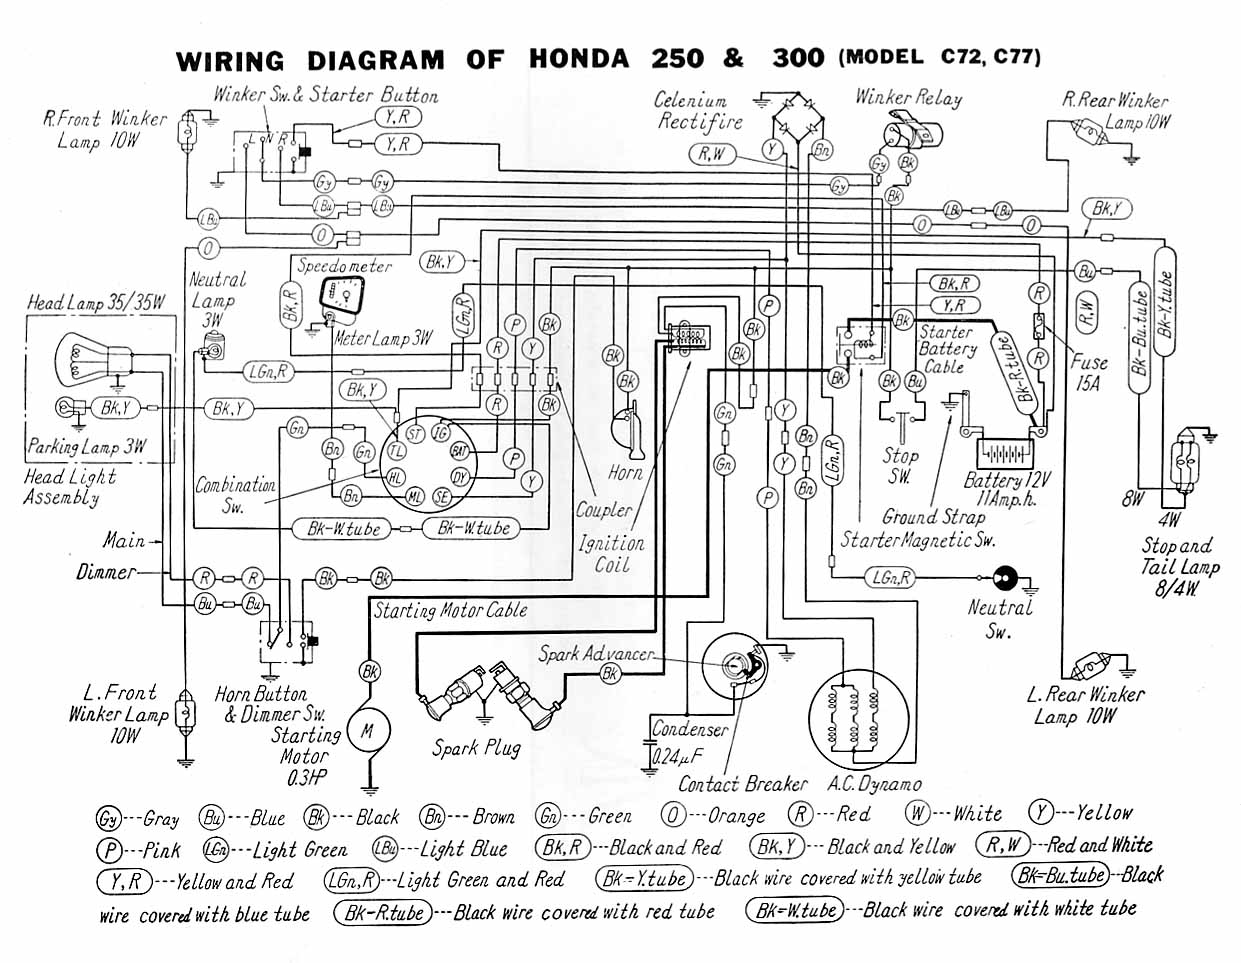 1979 Ford Ltd Wiring Diagram Library Electric Fan Moreover 79 Pinto Harness Diagrams Honda C90 Cl90